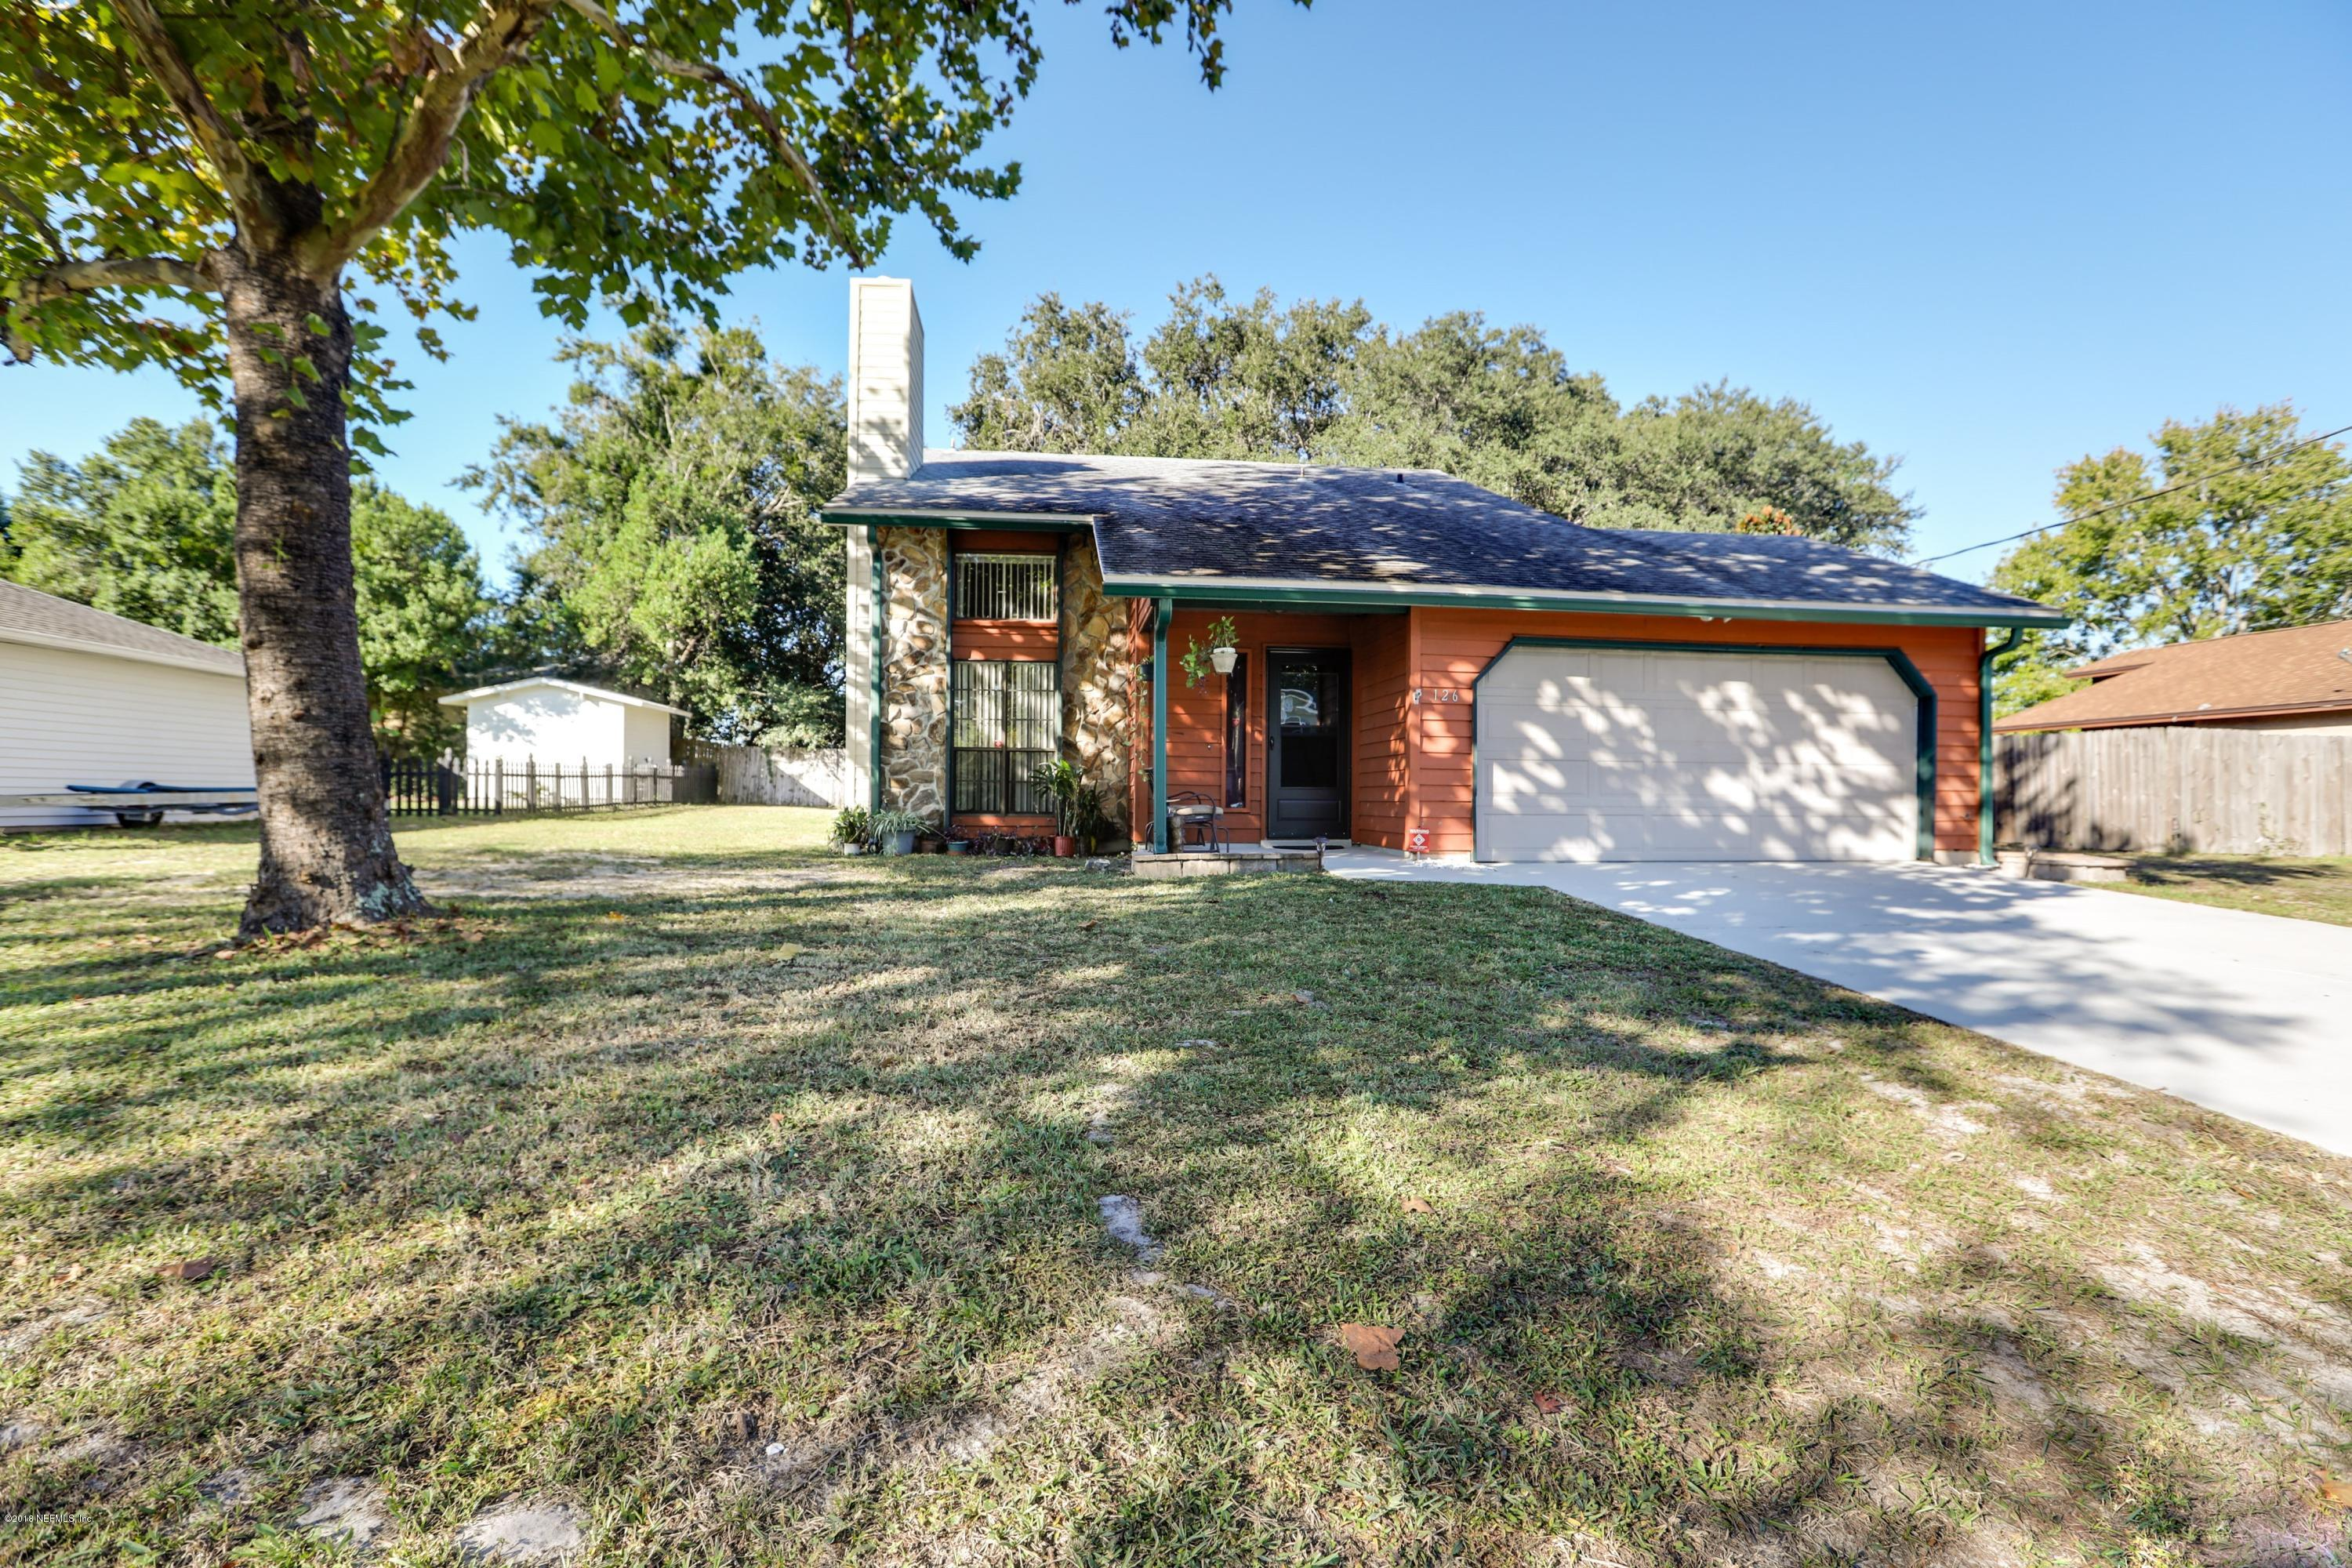 126 SEGOVIA, ST AUGUSTINE, FLORIDA 32086, 3 Bedrooms Bedrooms, ,2 BathroomsBathrooms,Residential - single family,For sale,SEGOVIA,964821